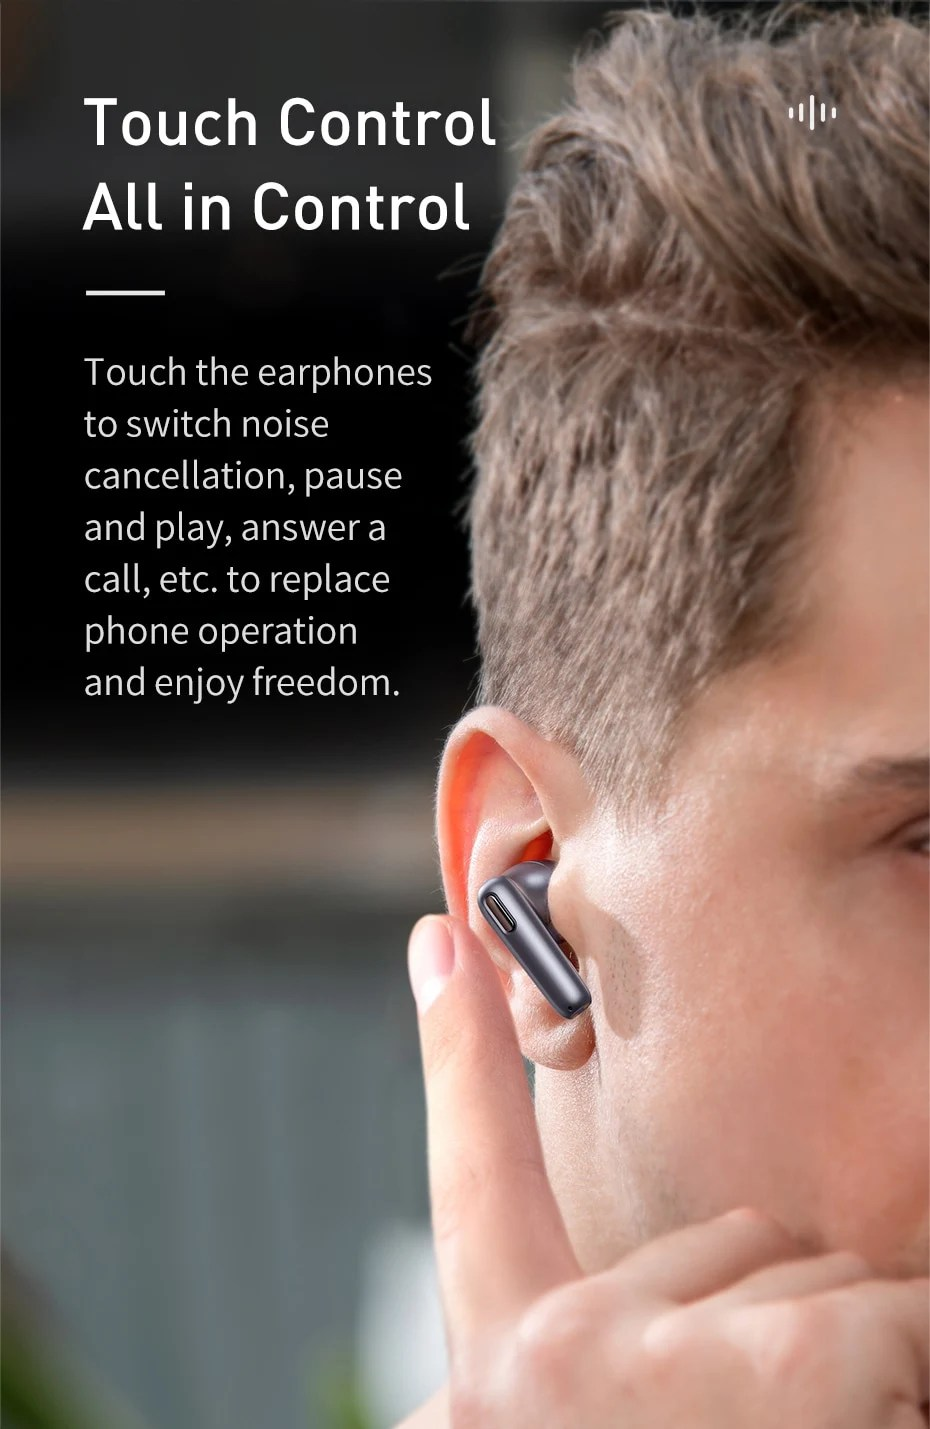 Baseus Official S2 TWS ANC True Wireless Earphones Active Noise Cancelling Bluetooth Headphone, Support Wireless Charging